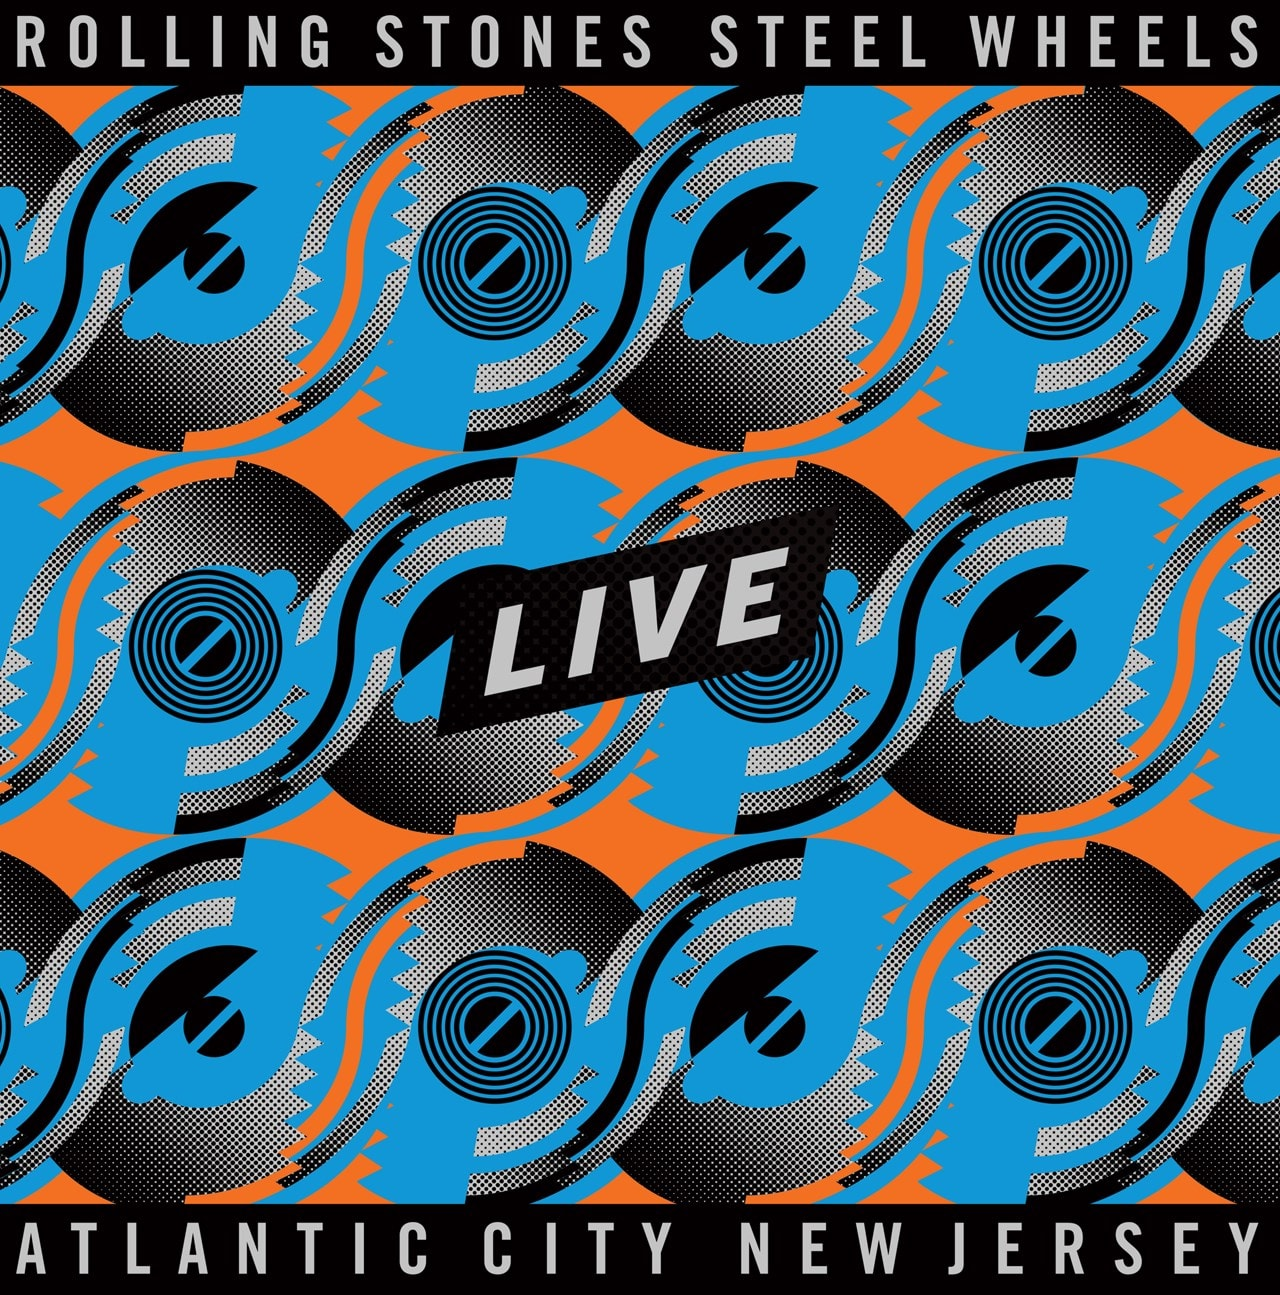 Steel Wheels Live - Atlantic City, New Jersey - Limited Edition Blue & Orange Vinyl - 2